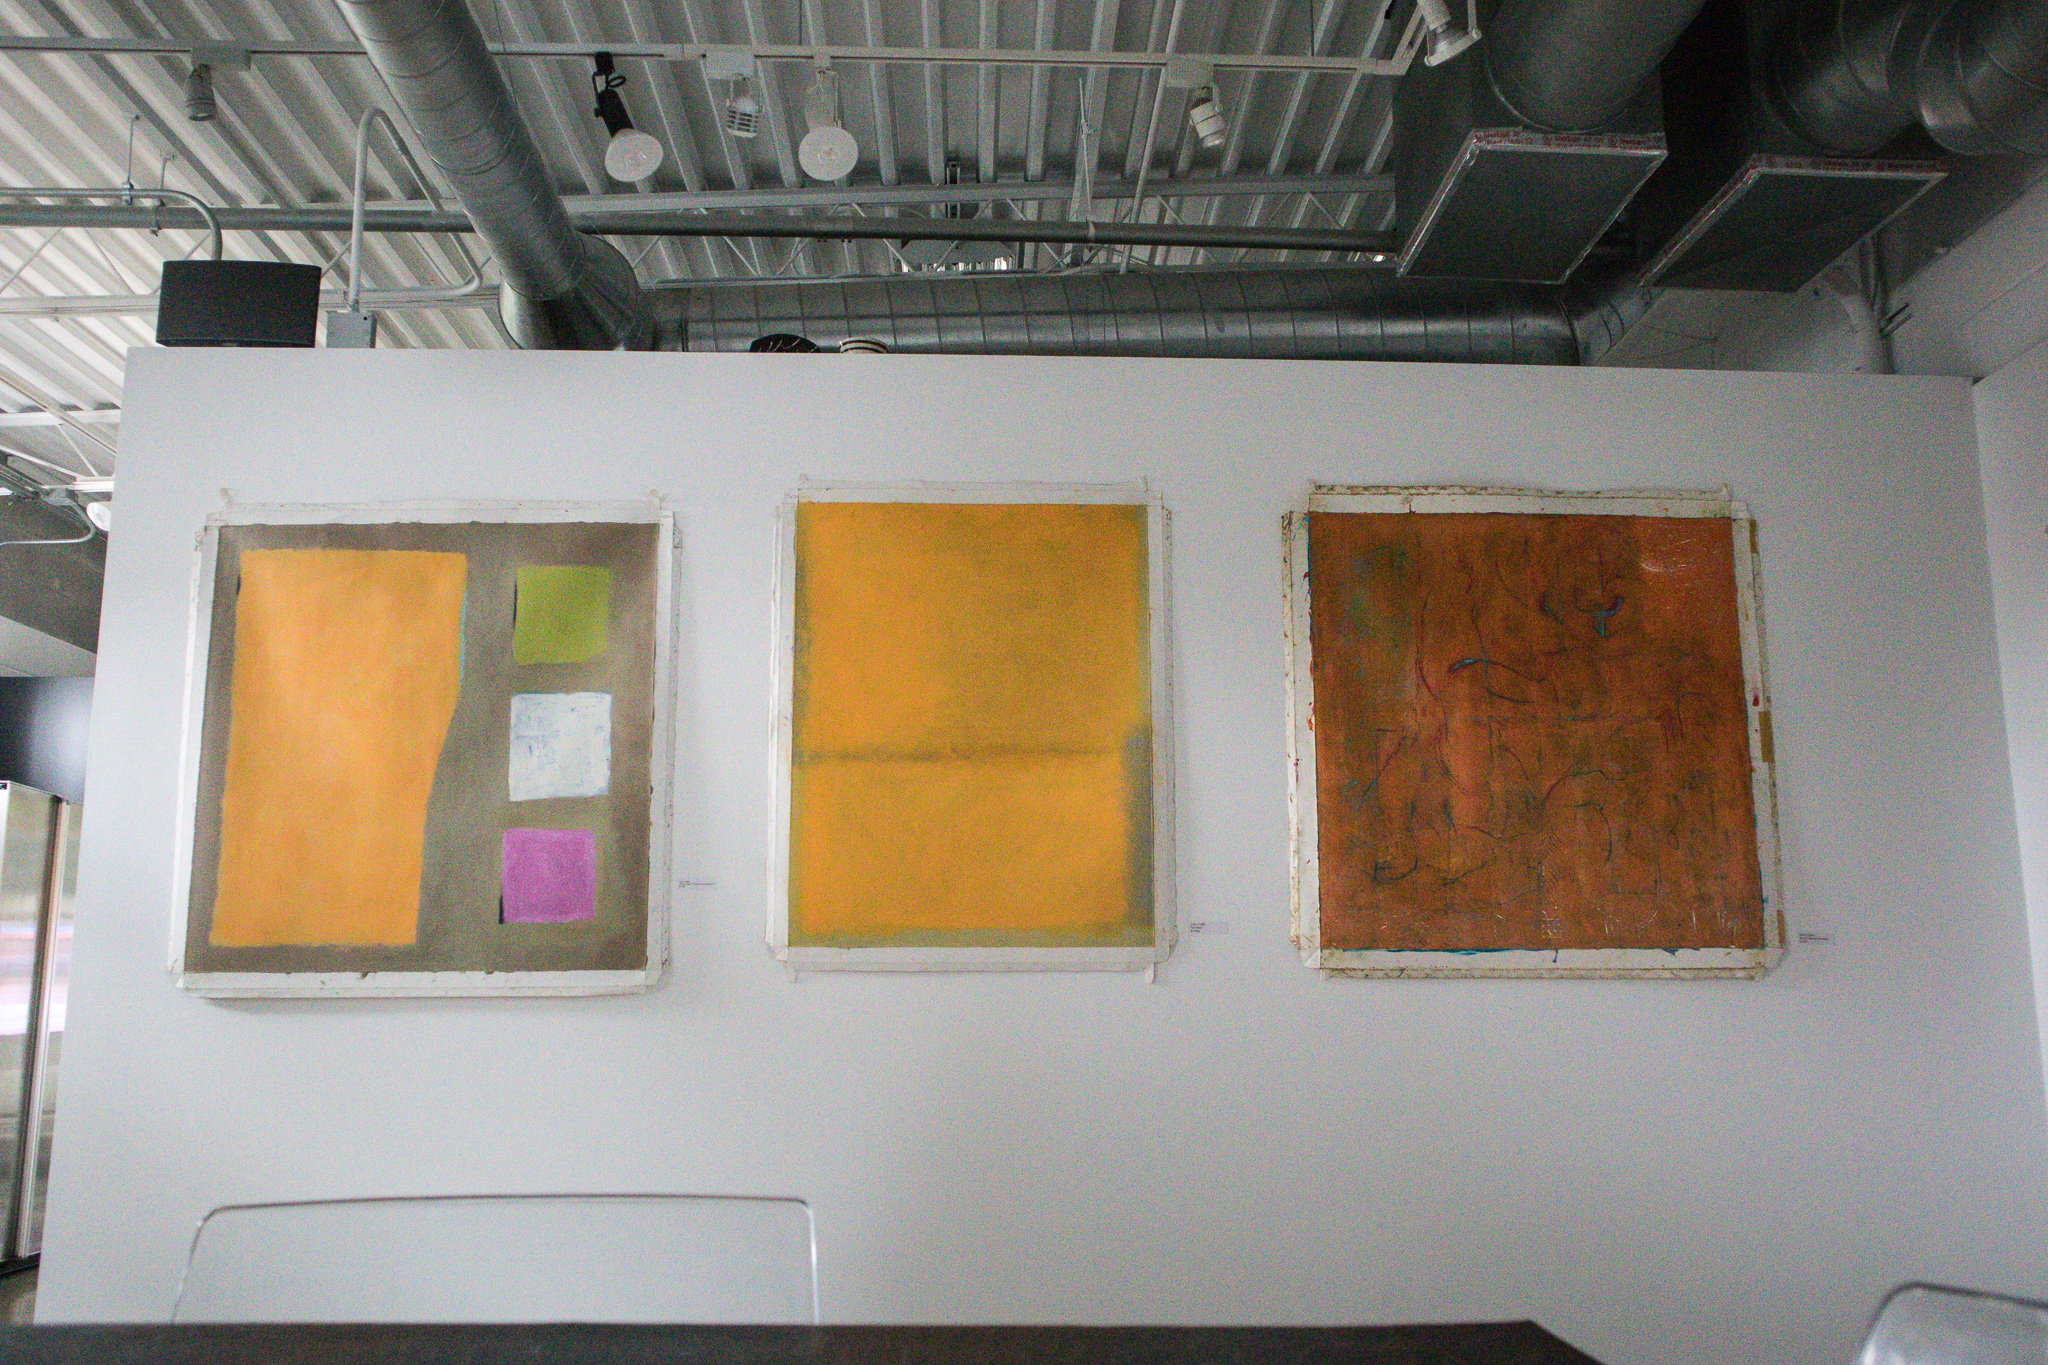 LEFT: Ochre Field: Three Floating Squares / Info. on request for Far Right & 2nd From Right pieces